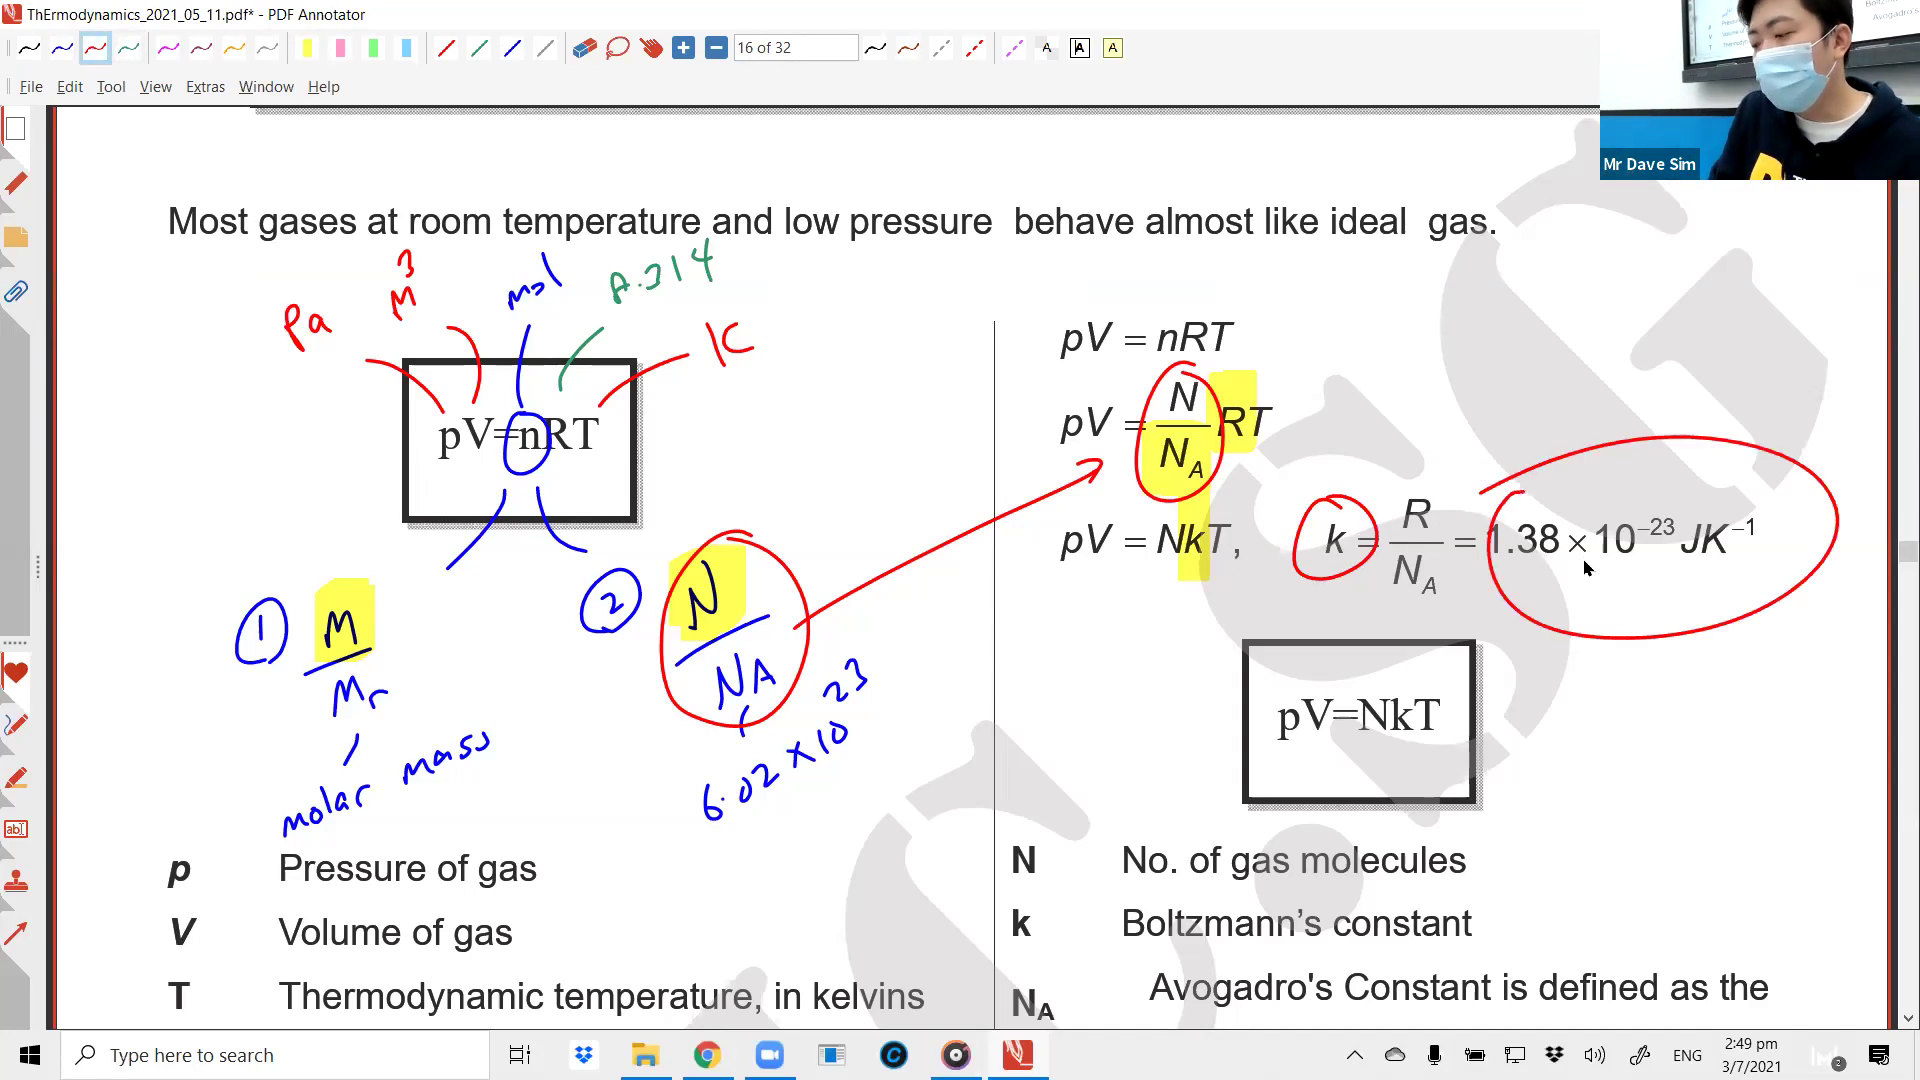 [THERMAL PHYSICS] Ideal Equation of State